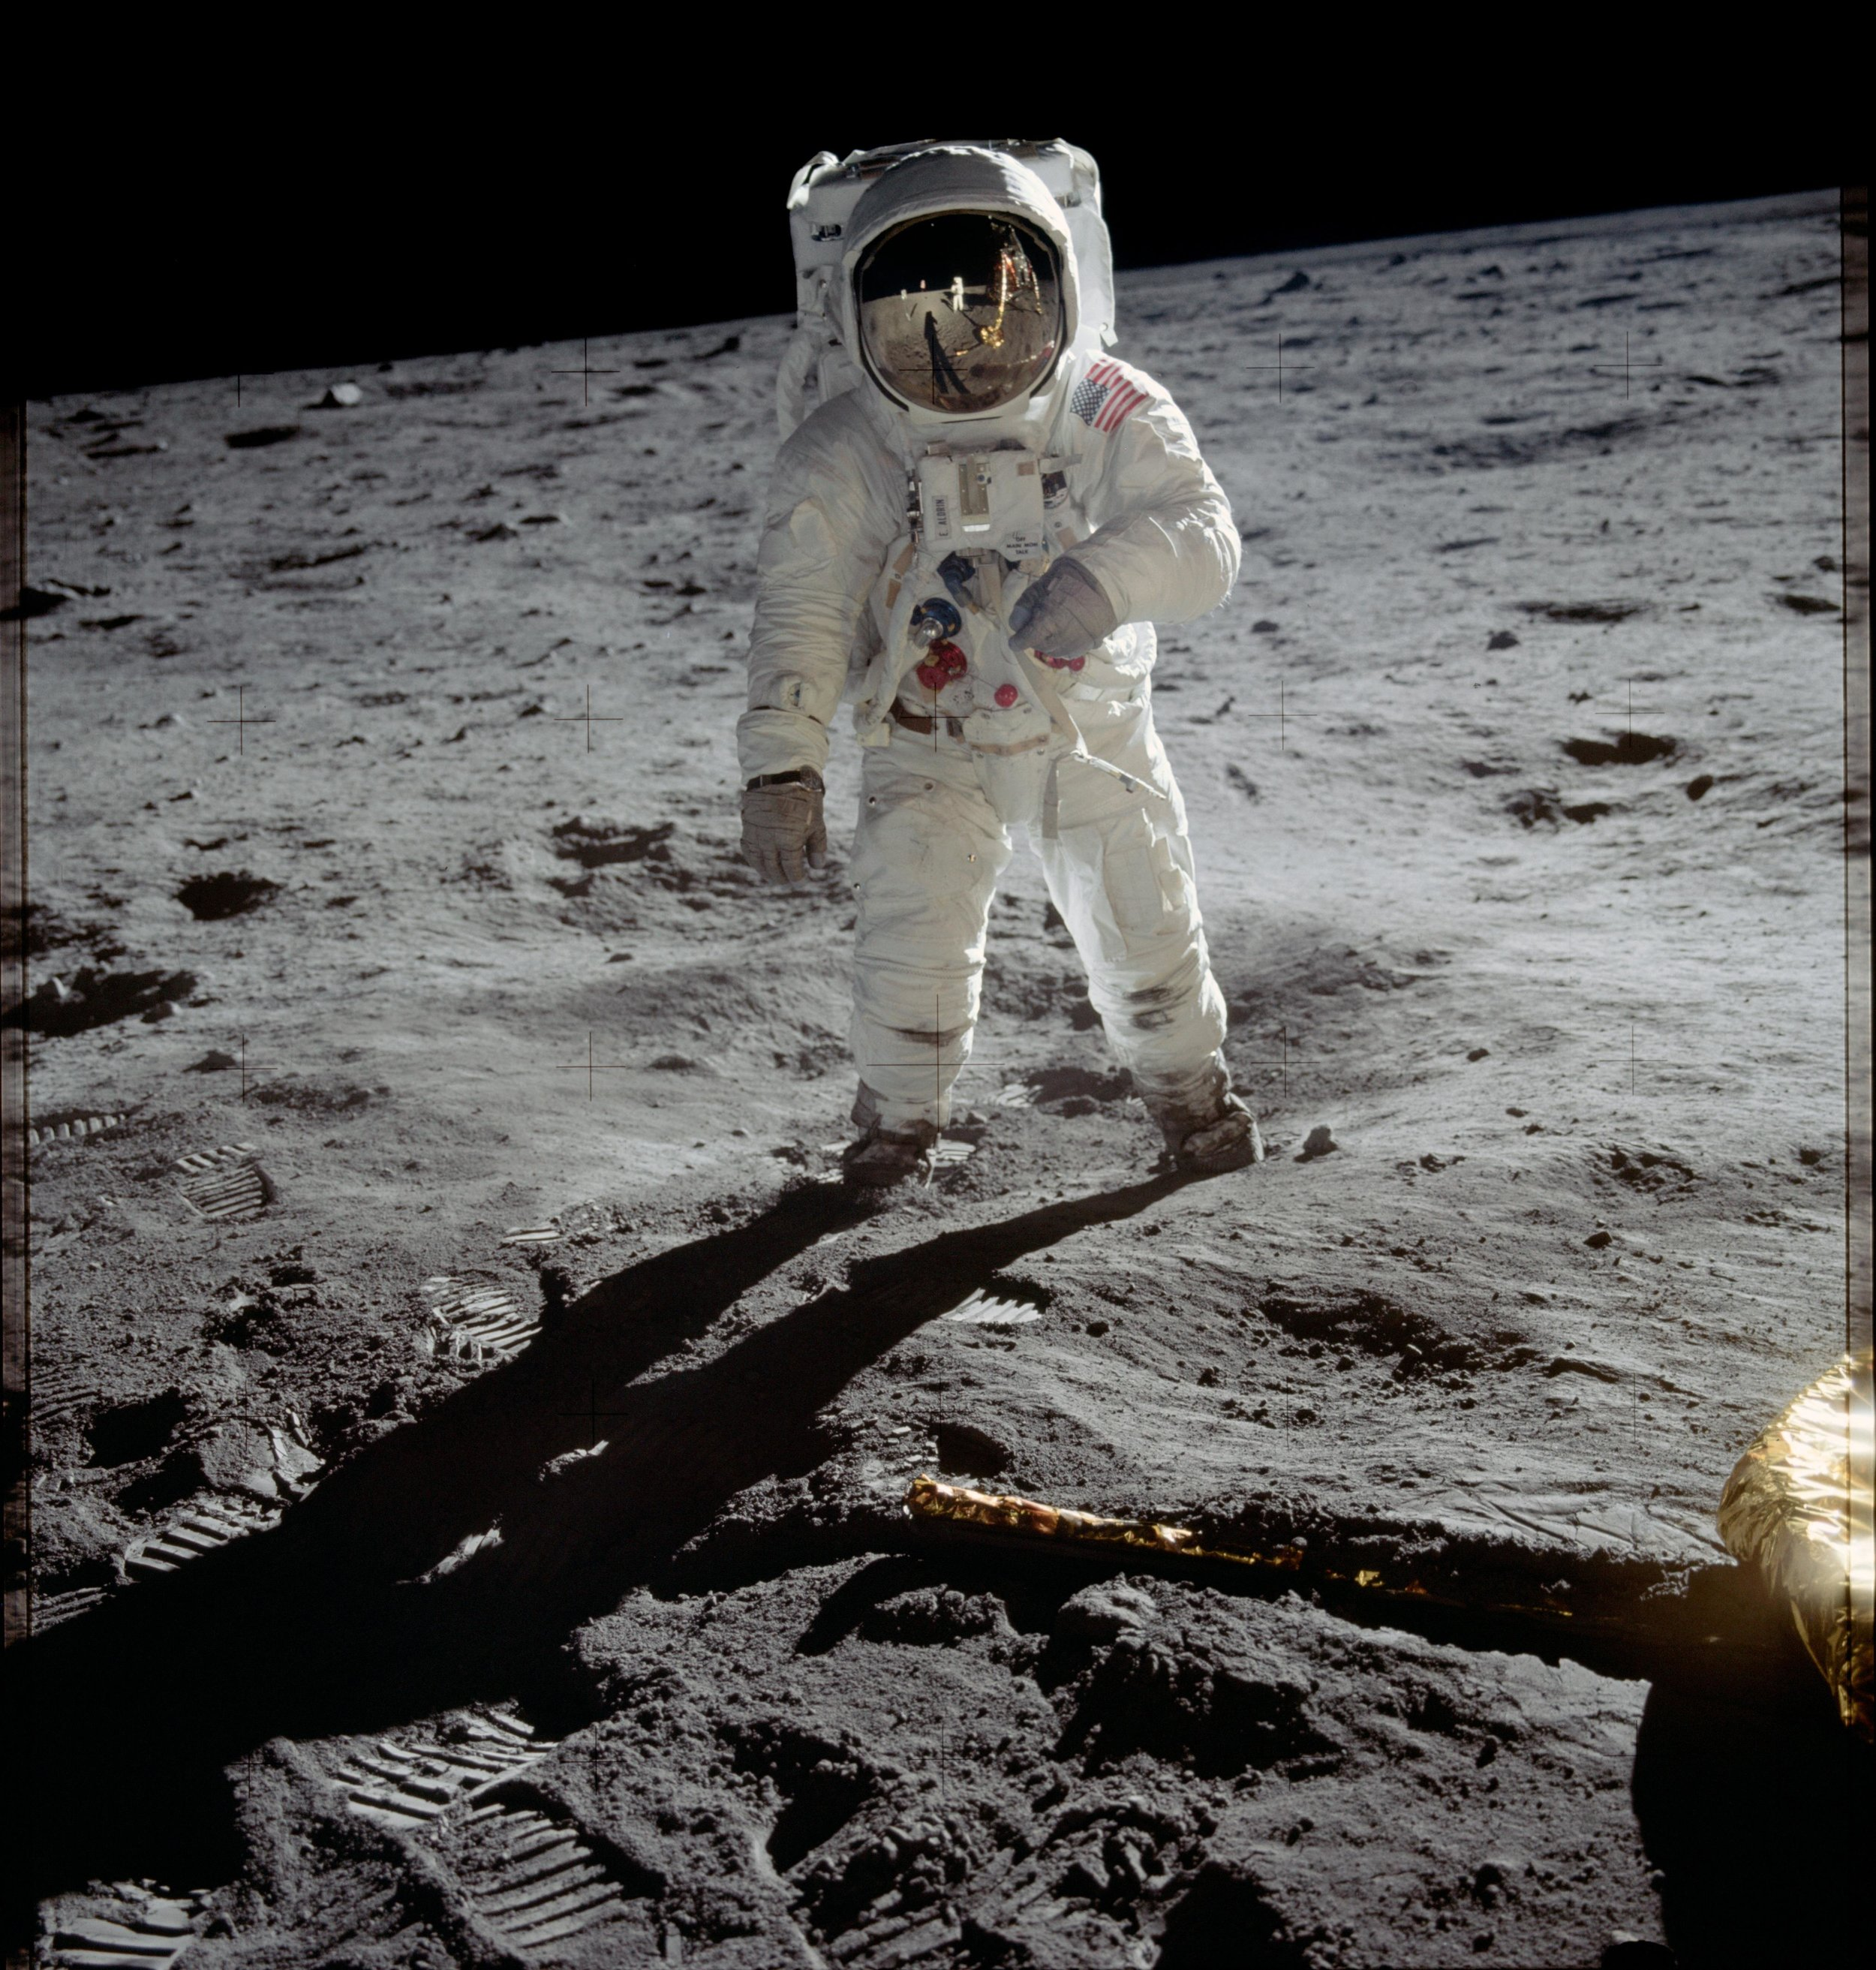 A man first walked on the moon on July 20, 1969. Photo via NASA.